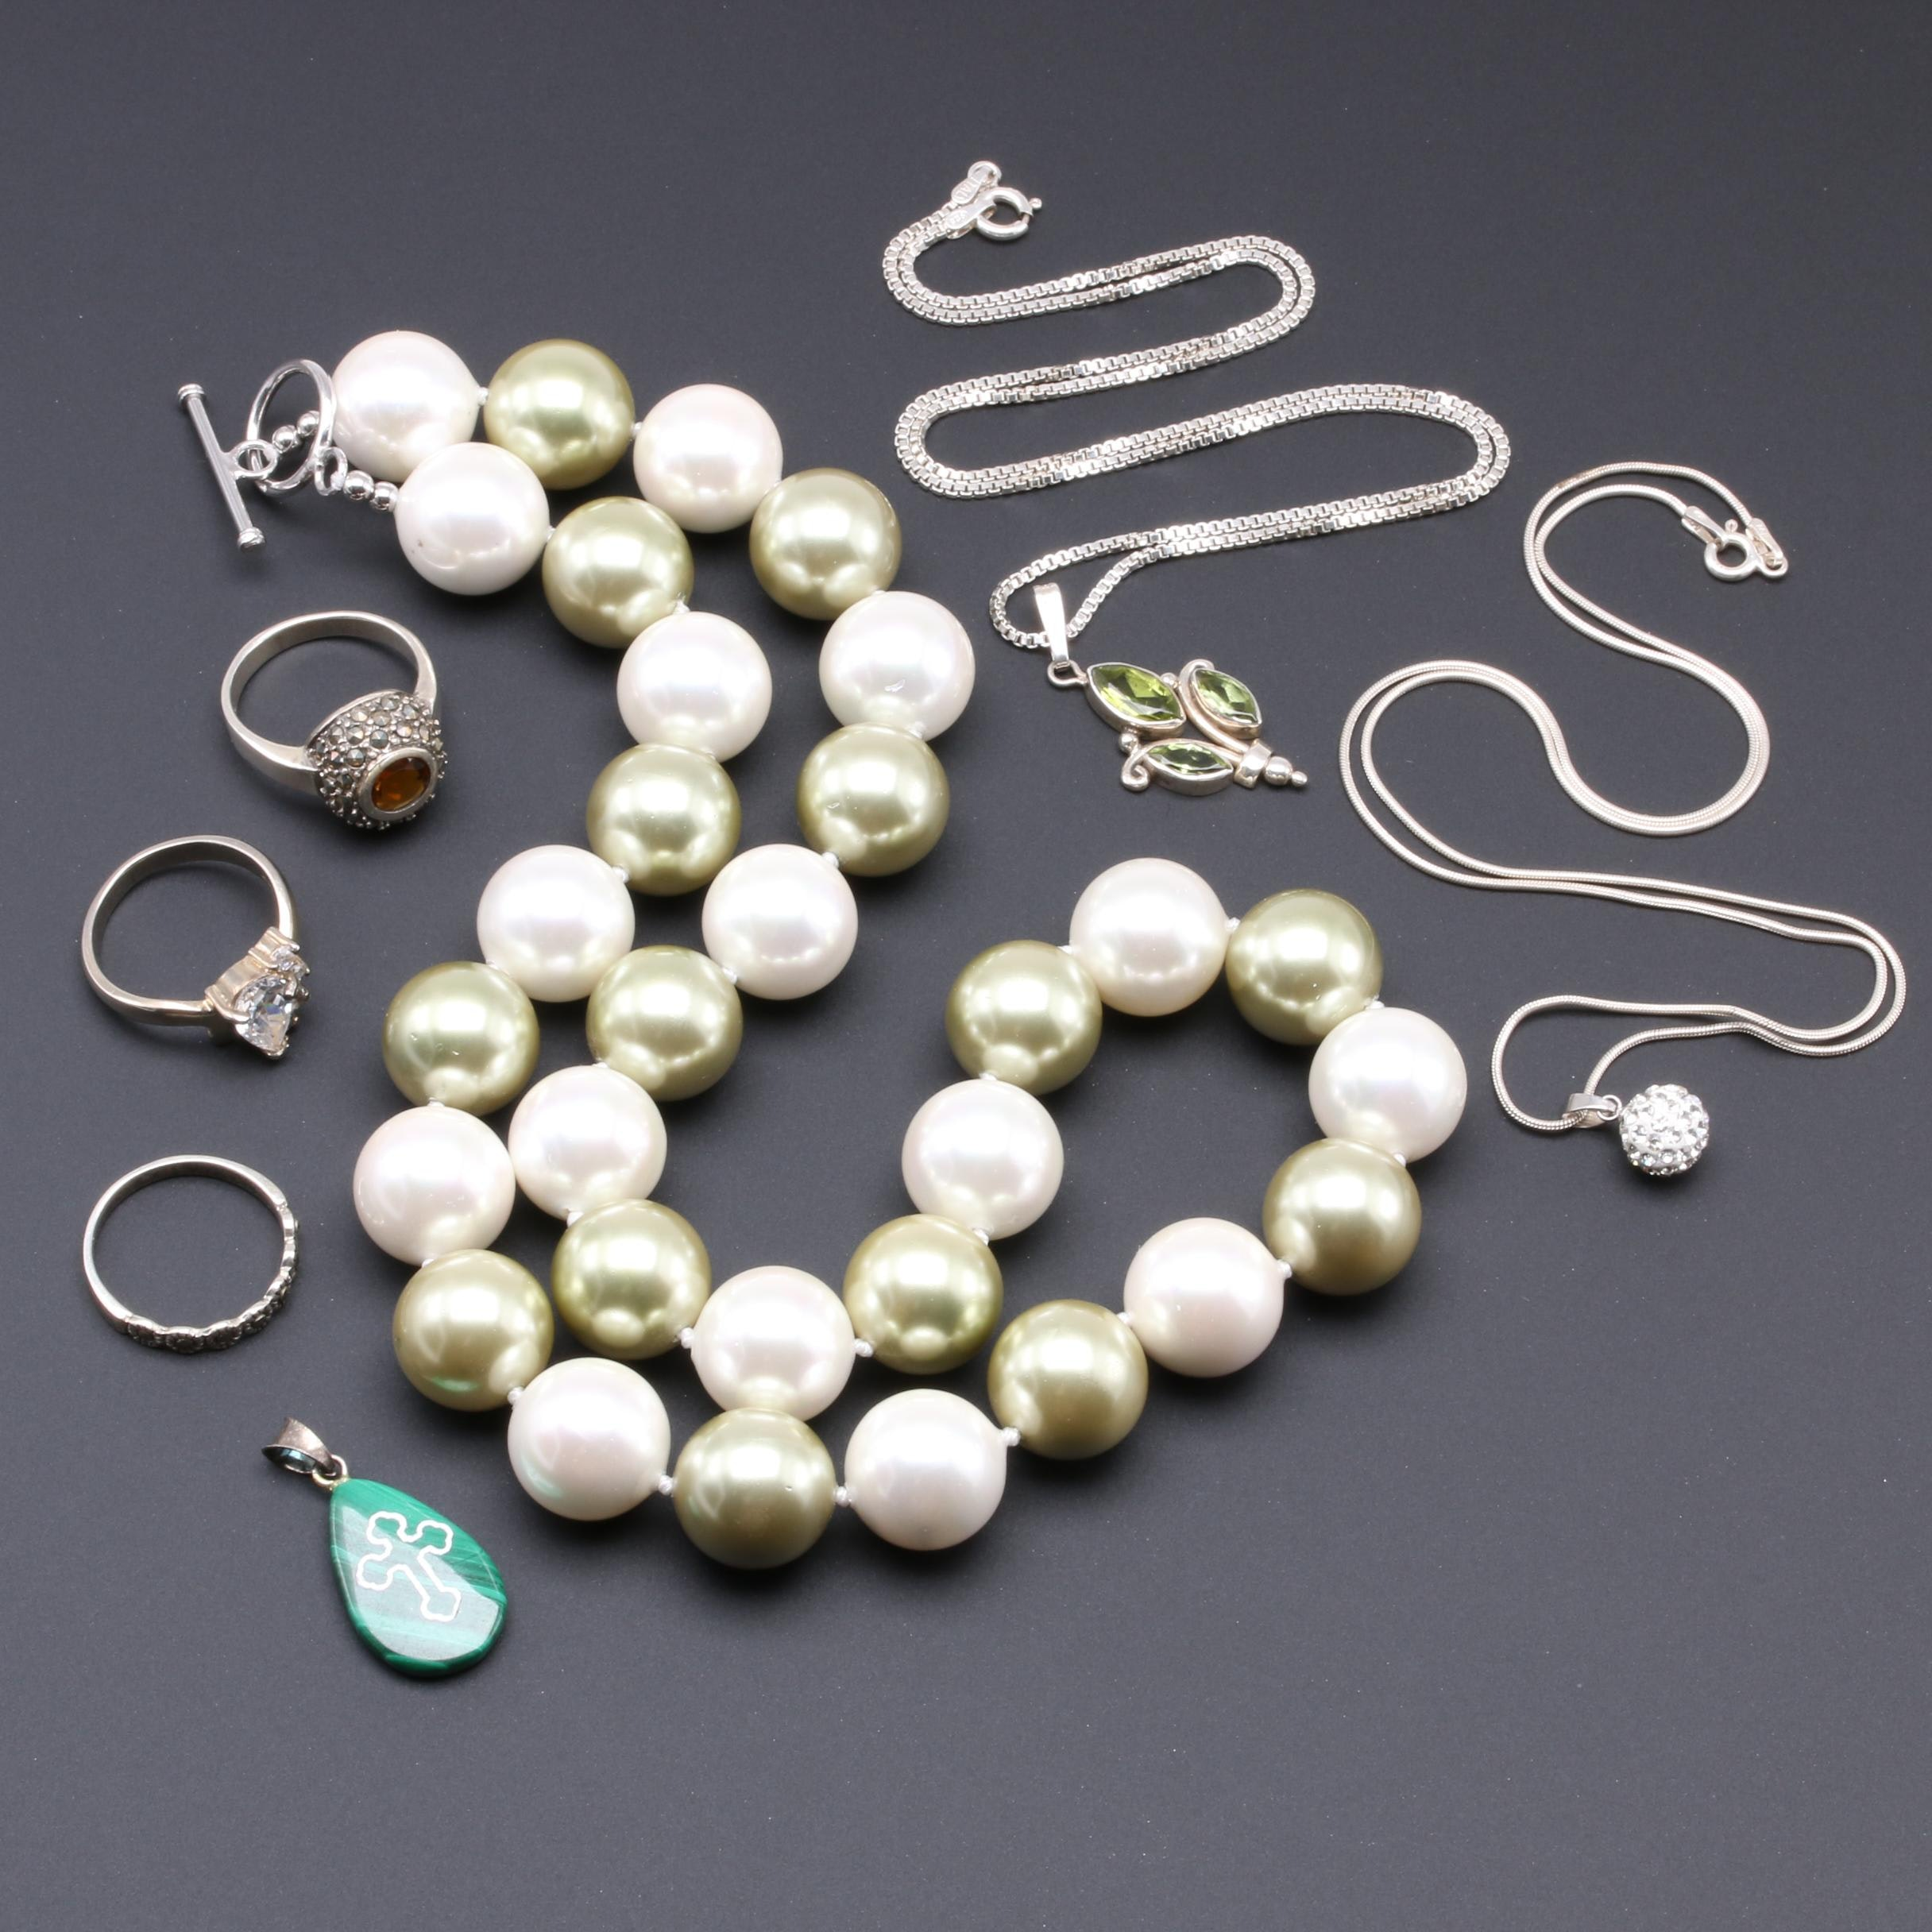 Sterling Silver Necklace and Ring Selection Including Malachite and Peridot